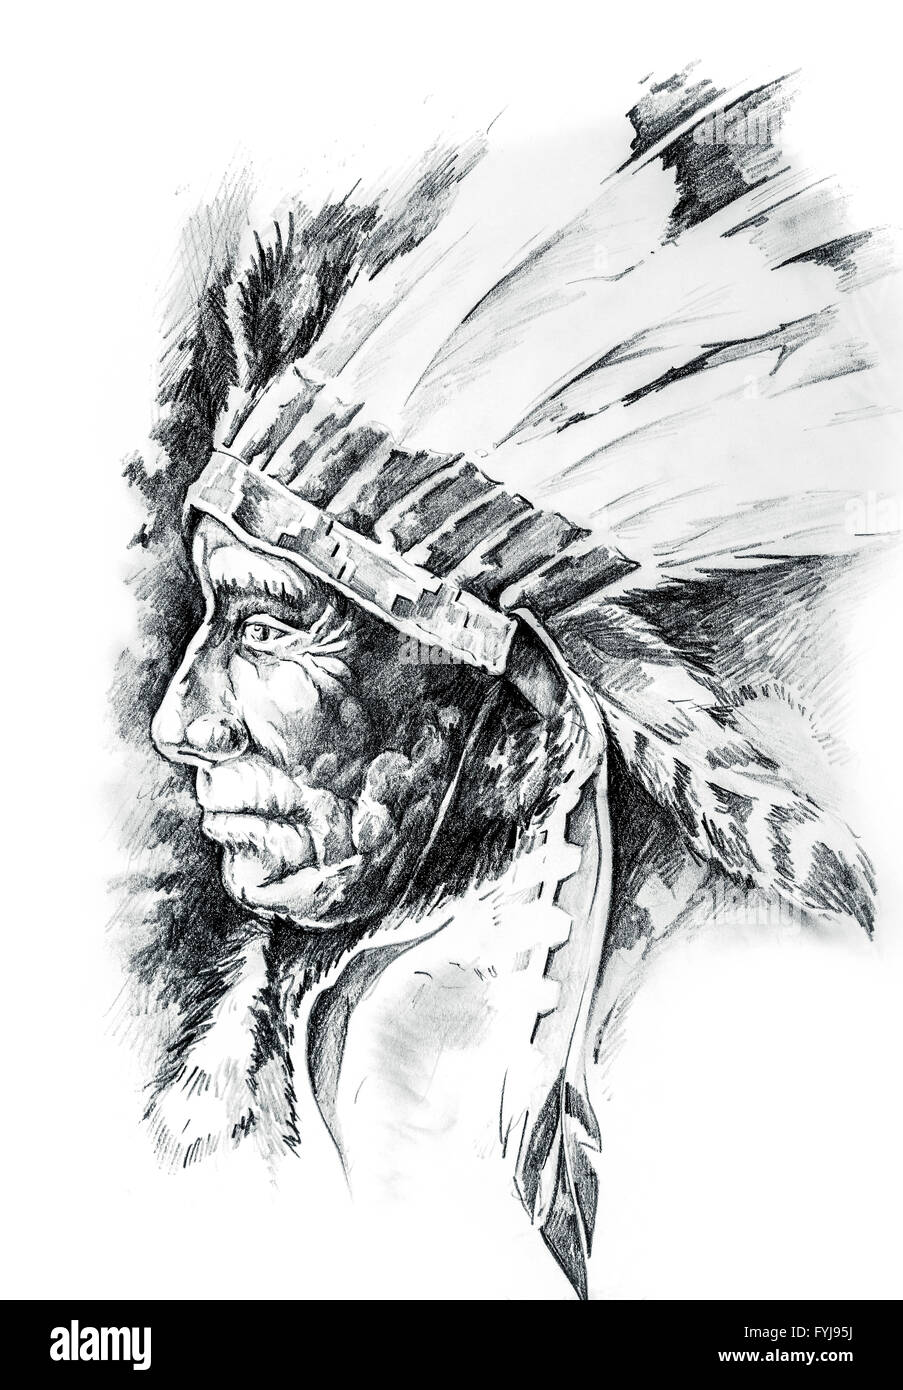 Sketch of tattoo art, native american indian head, chief, isolated - Stock Image